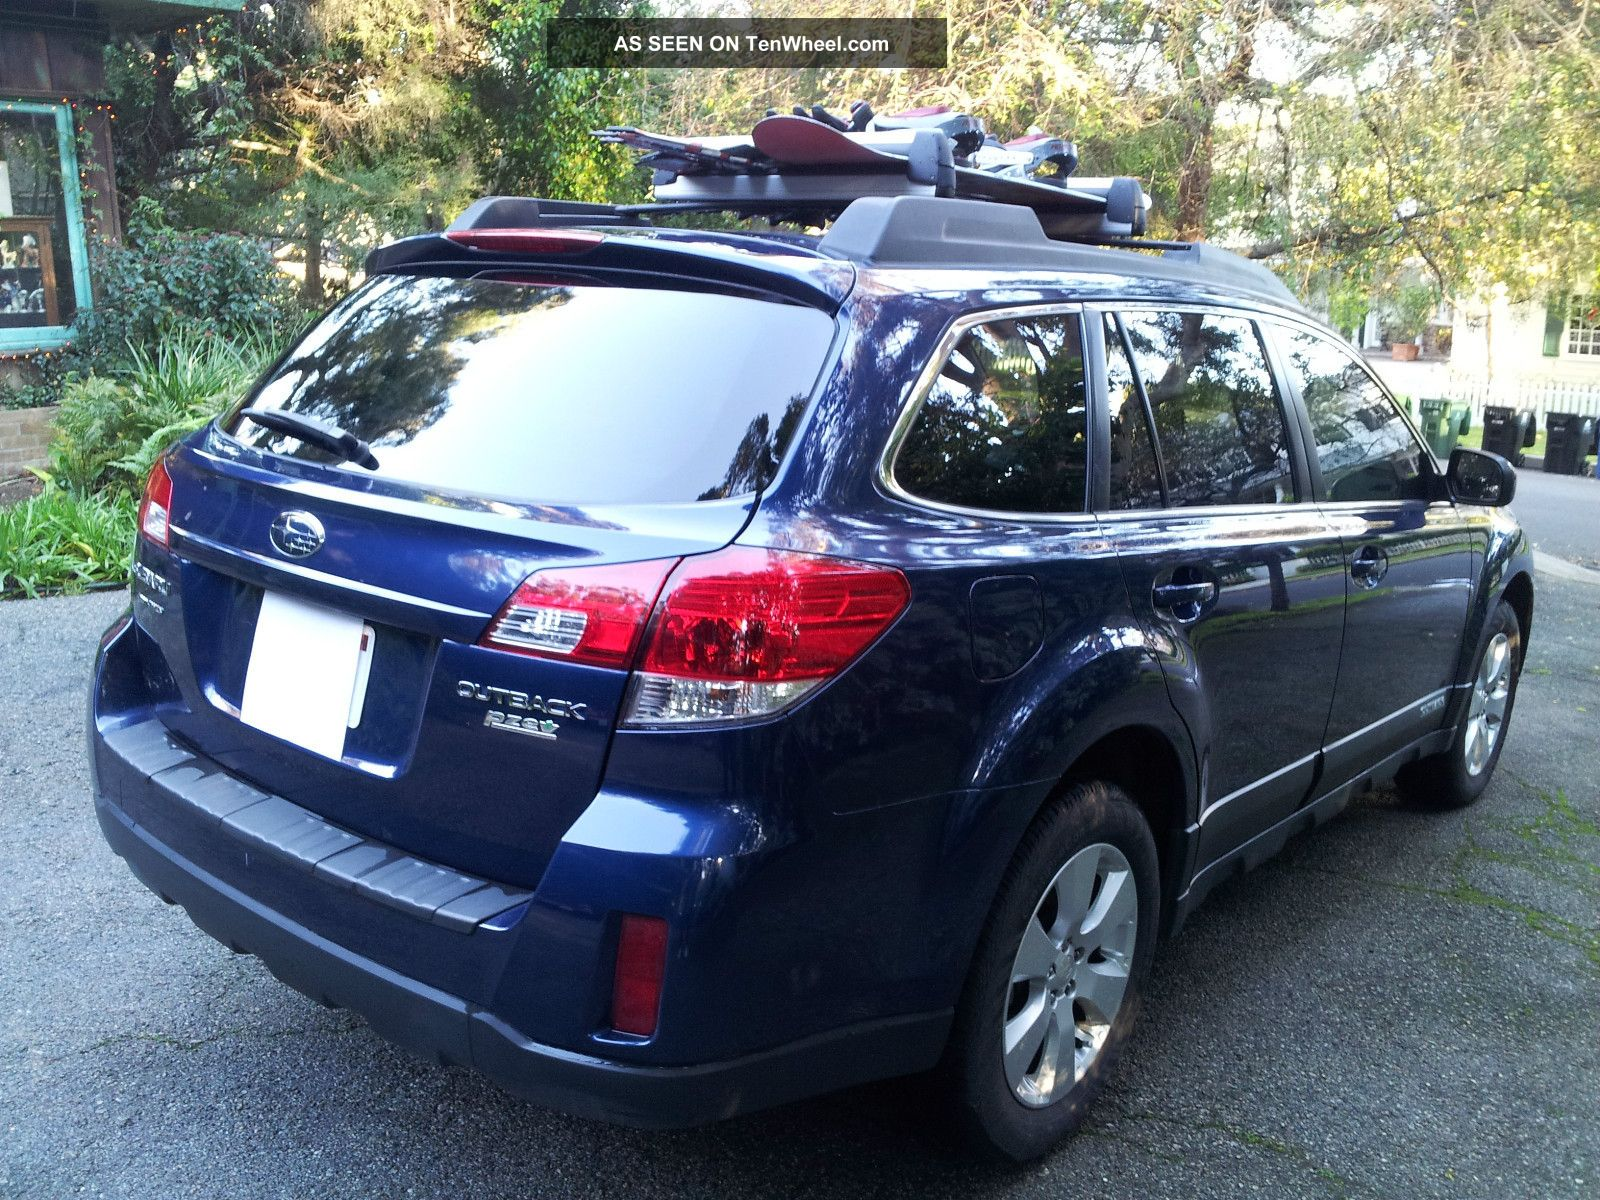 2010 subaru outback 2 5 limited edition back view camera. Black Bedroom Furniture Sets. Home Design Ideas